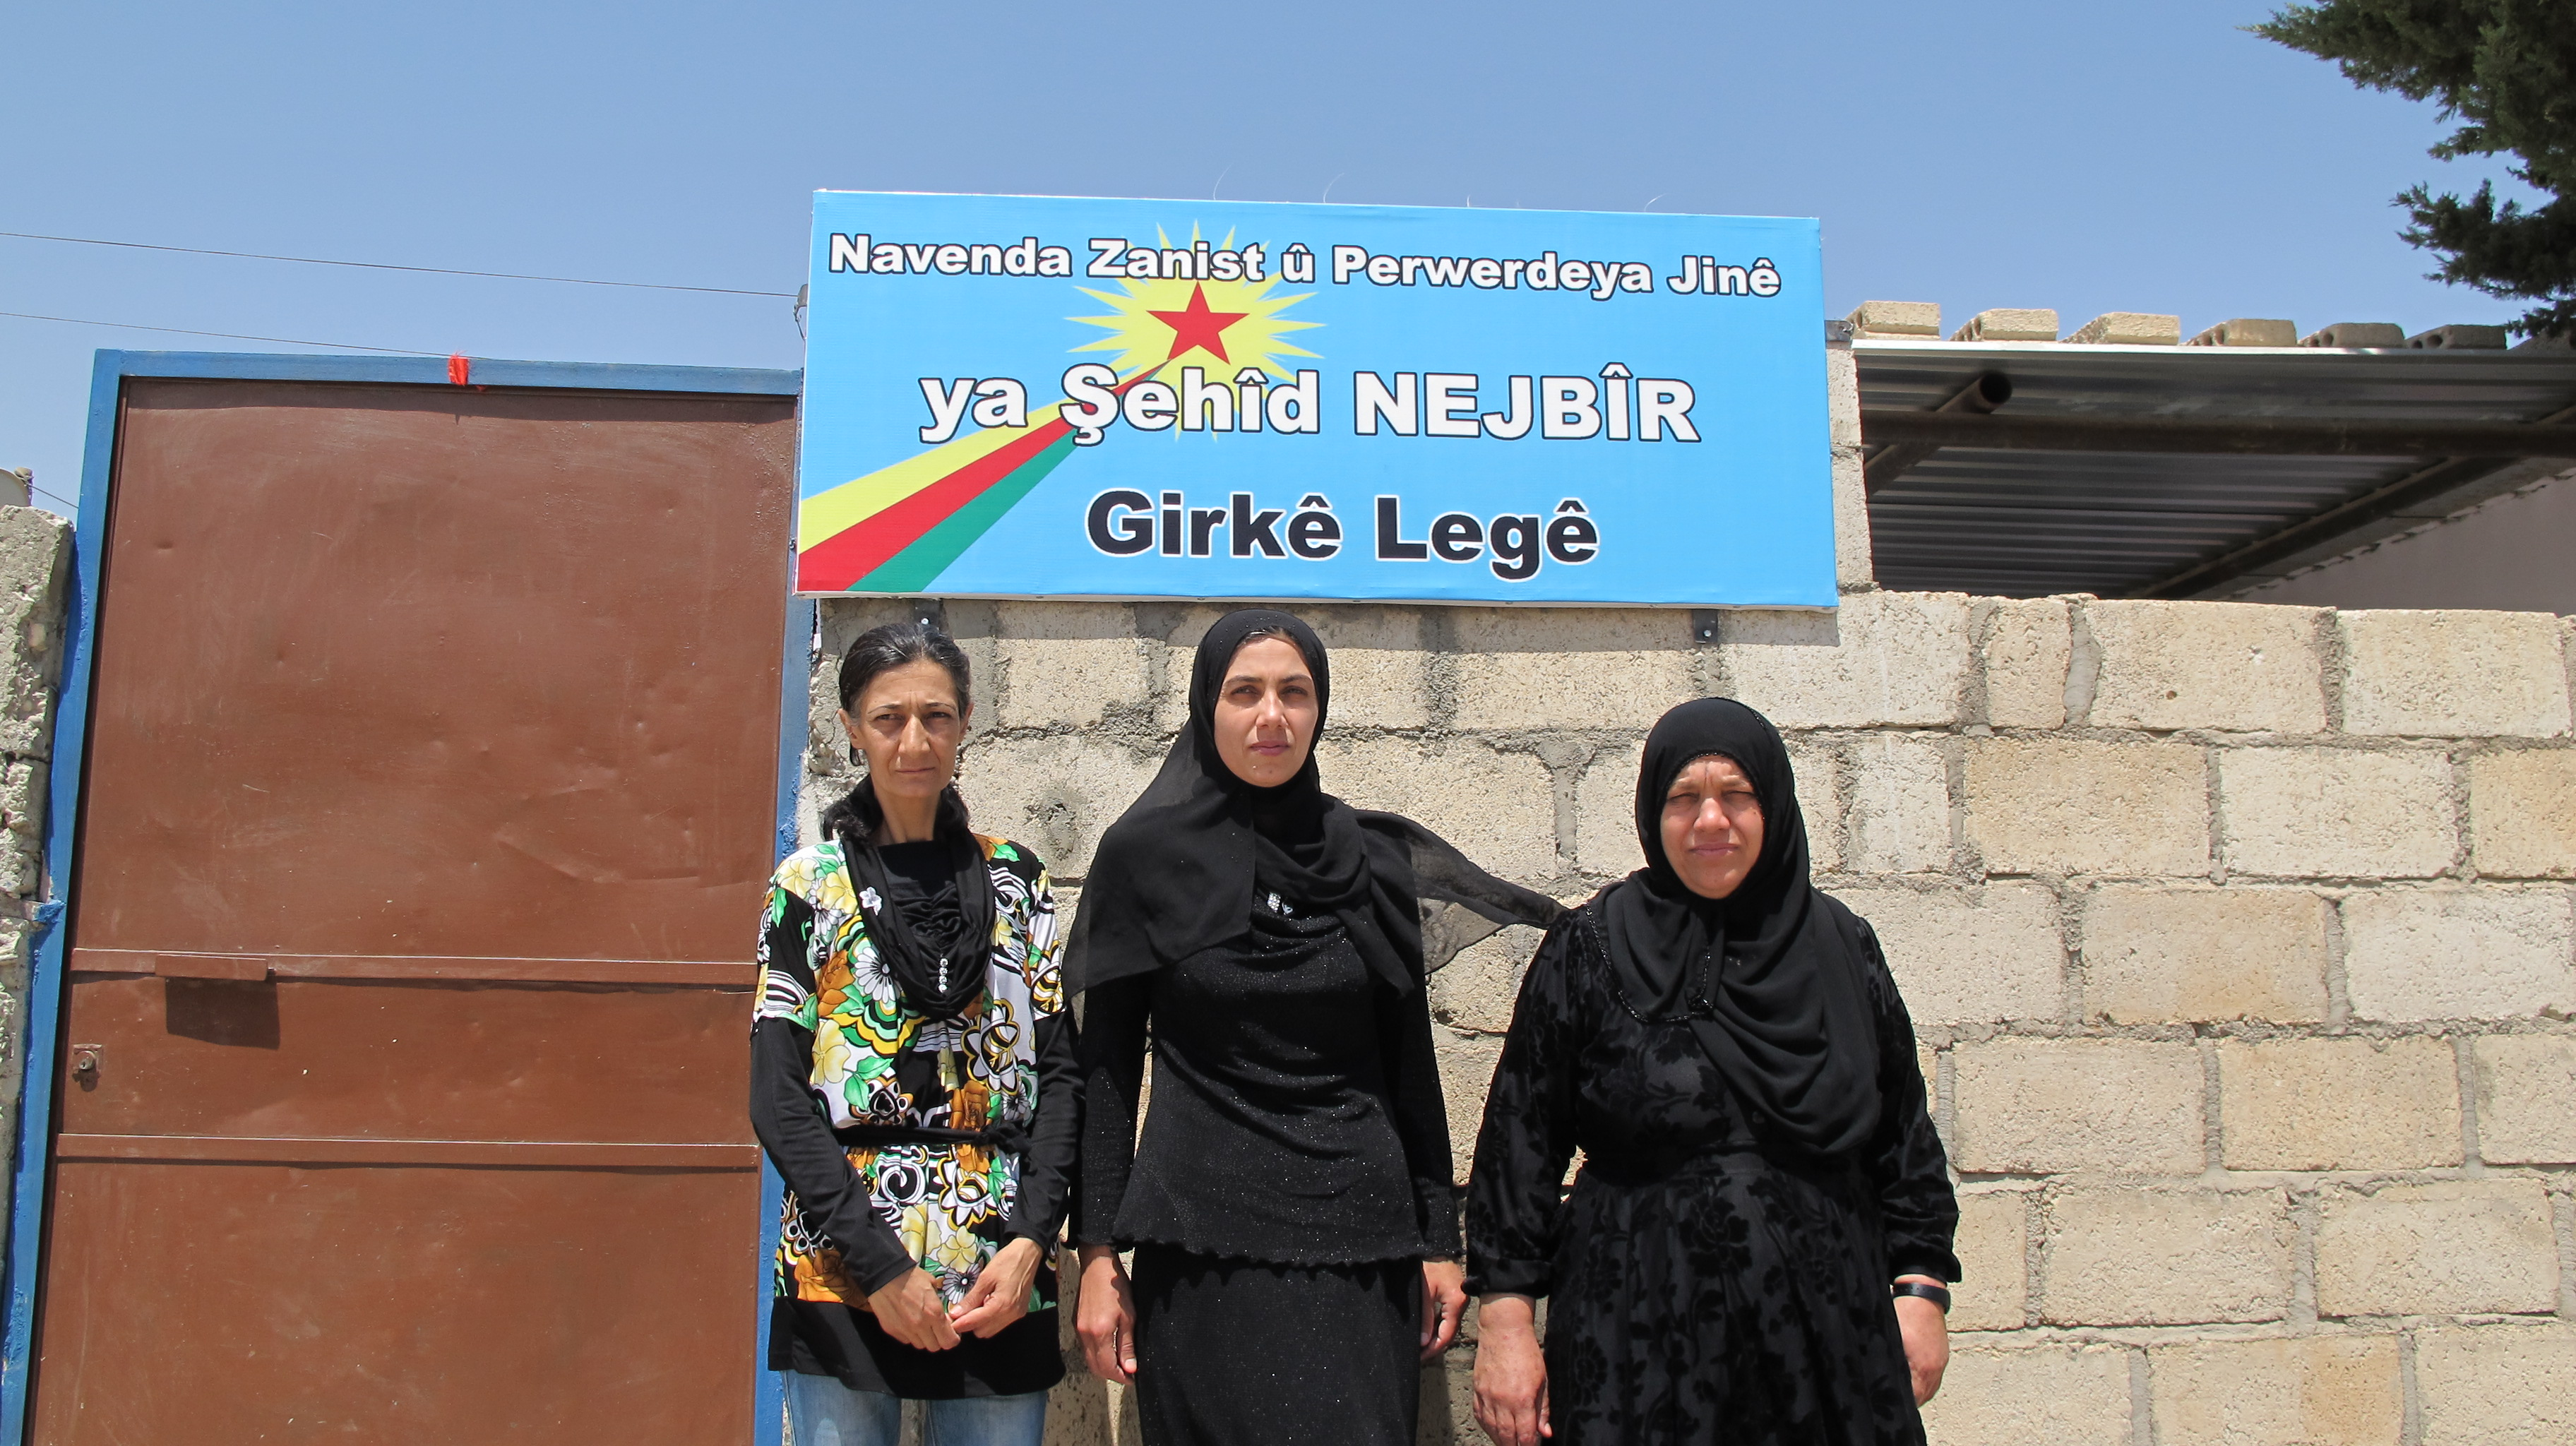 Kurdish women volunteers at the Girke Lege women's center (Wikipedia)